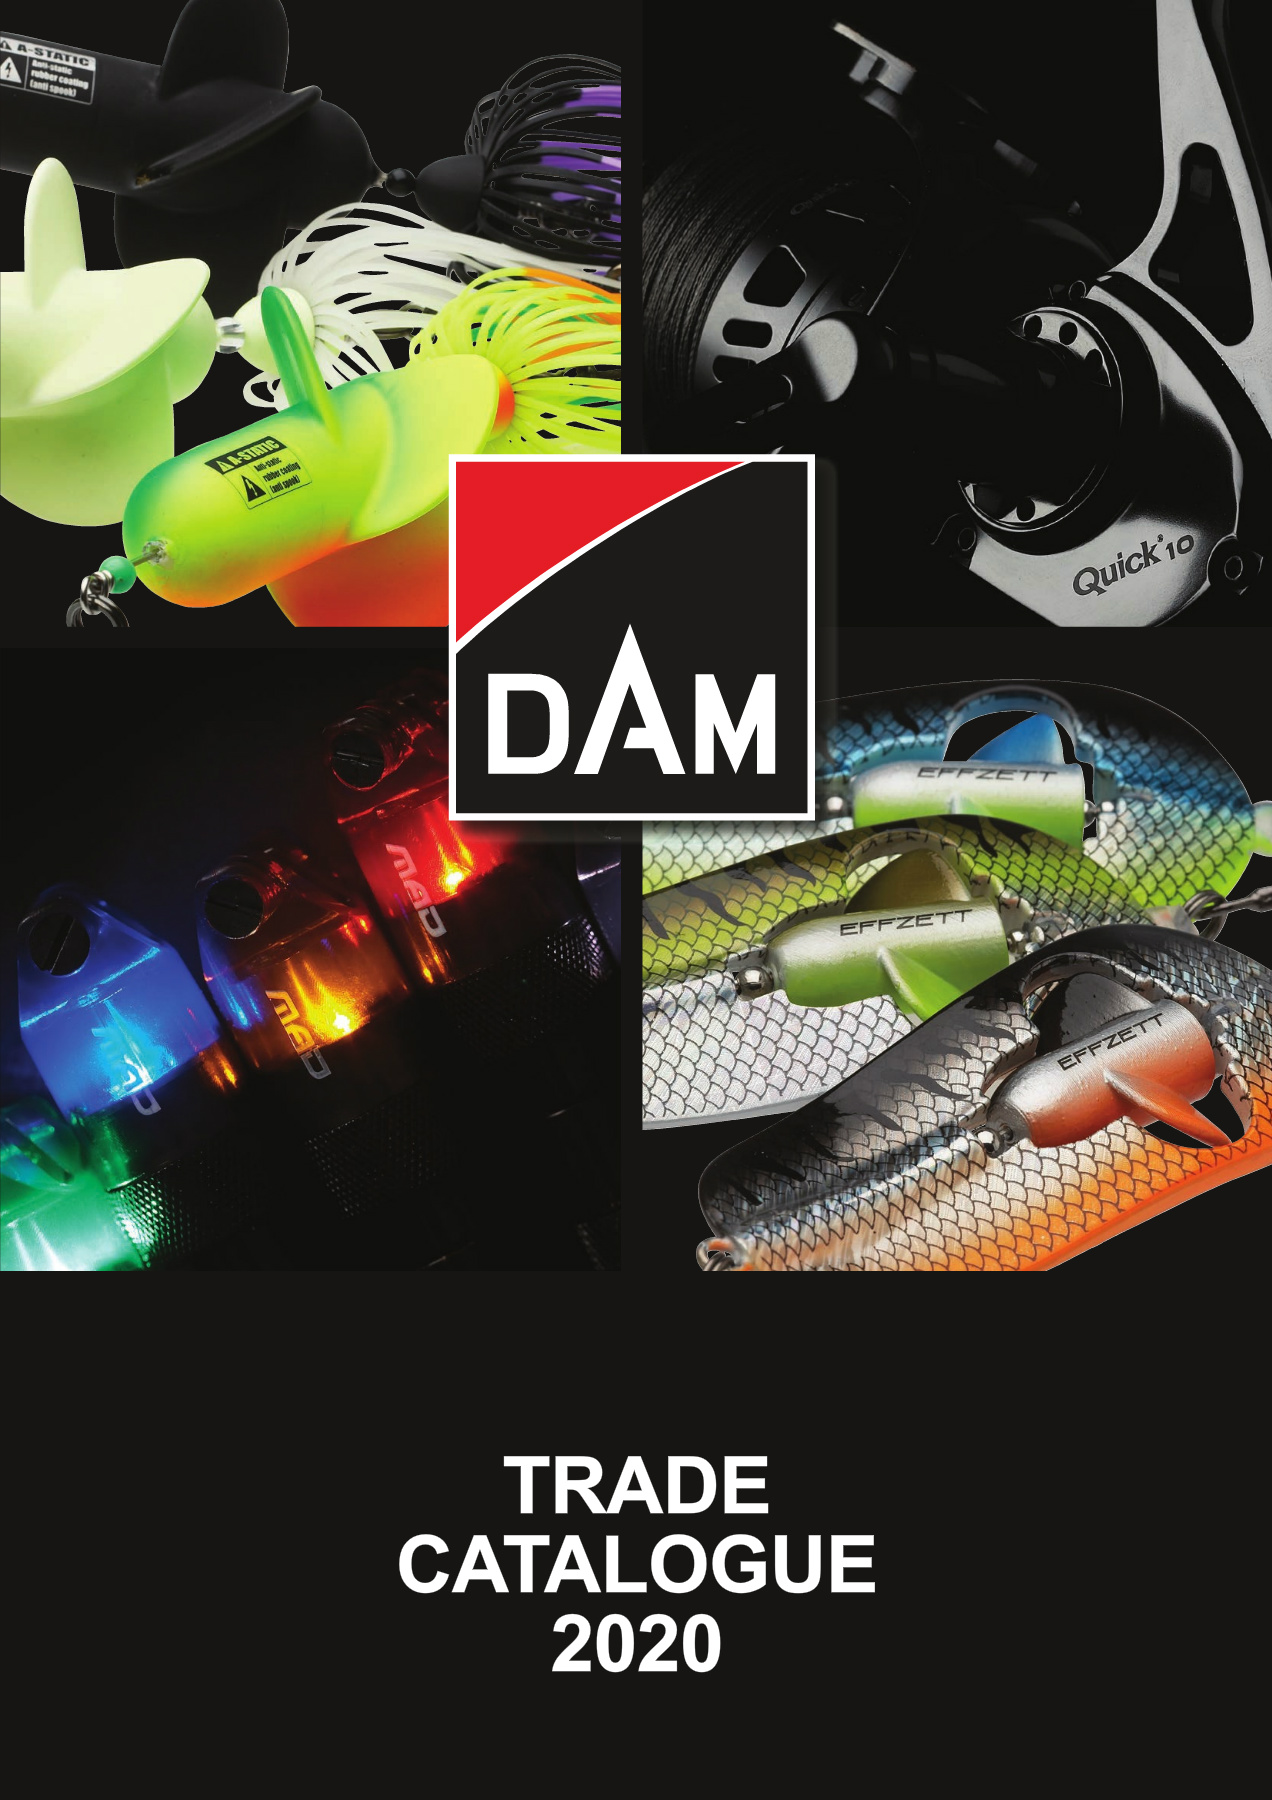 DAM Fighter Pro Neoprene Gloves Water-Resistant Insulating M L XL Sizes